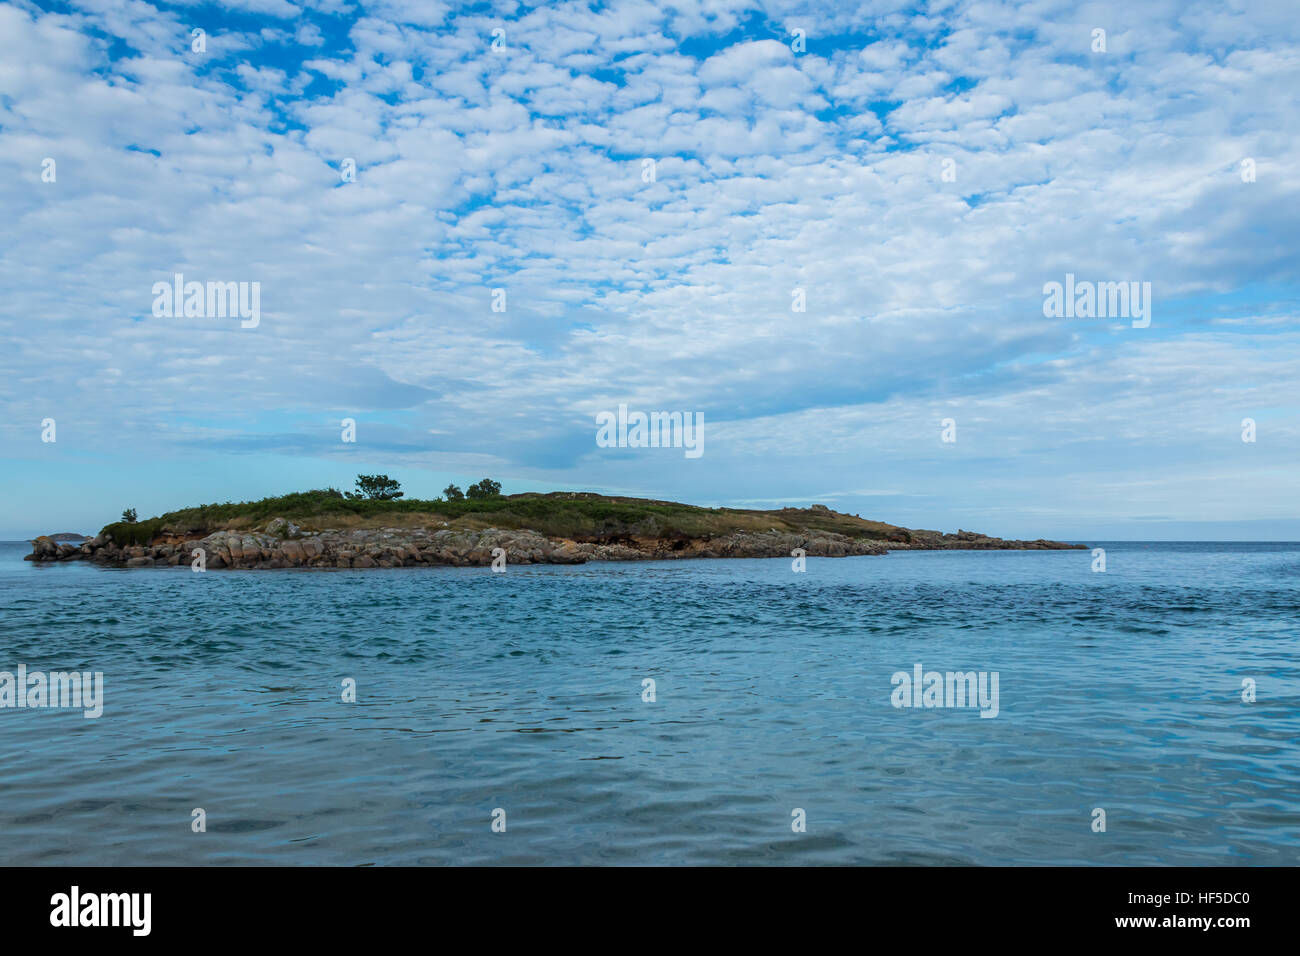 Toll's island cut off by high tide with a mackerel sky, St Mary's, Isles of Scilly - Stock Image